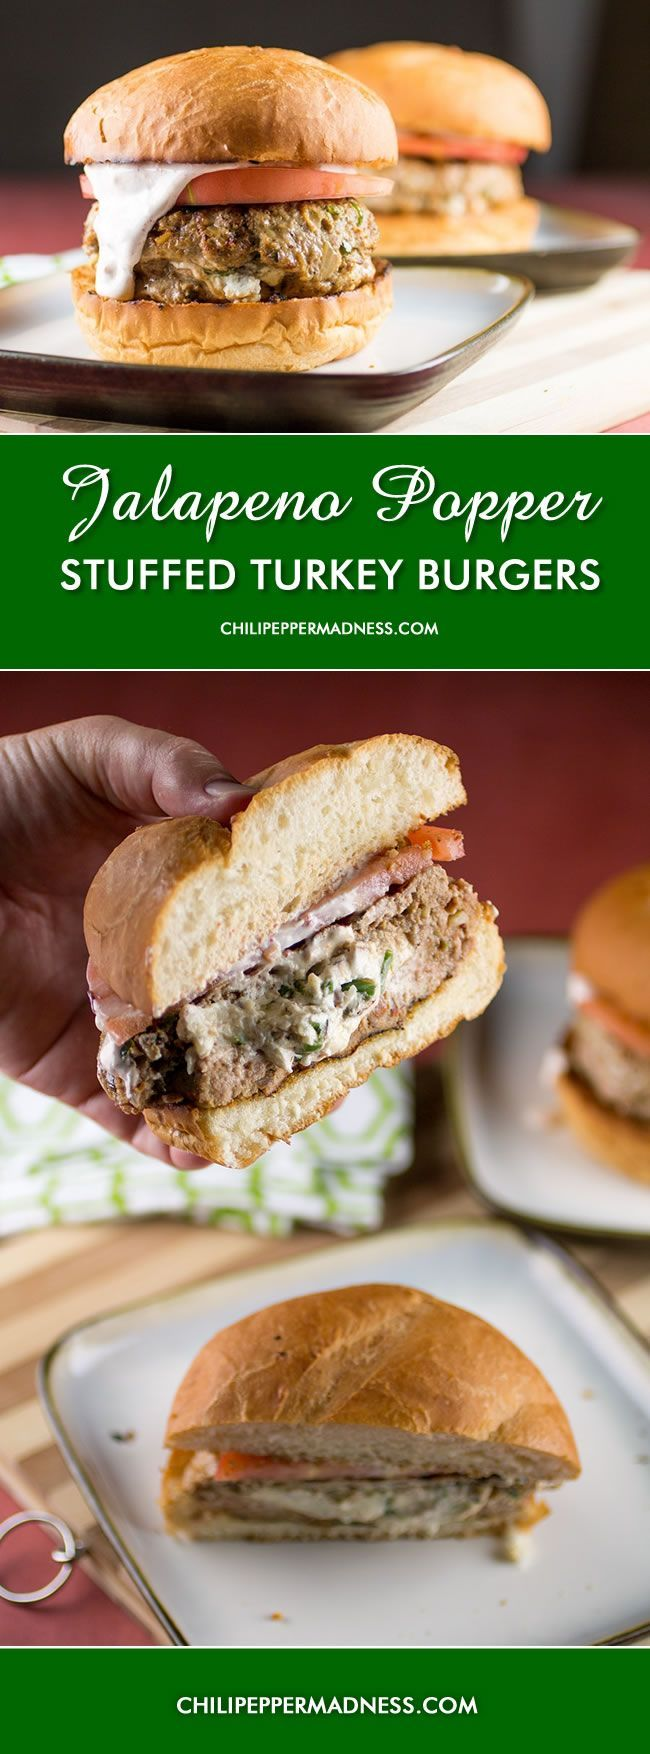 Jalapeno Popper Stuffed Turkey Burgers with Southwest Lime Sauce